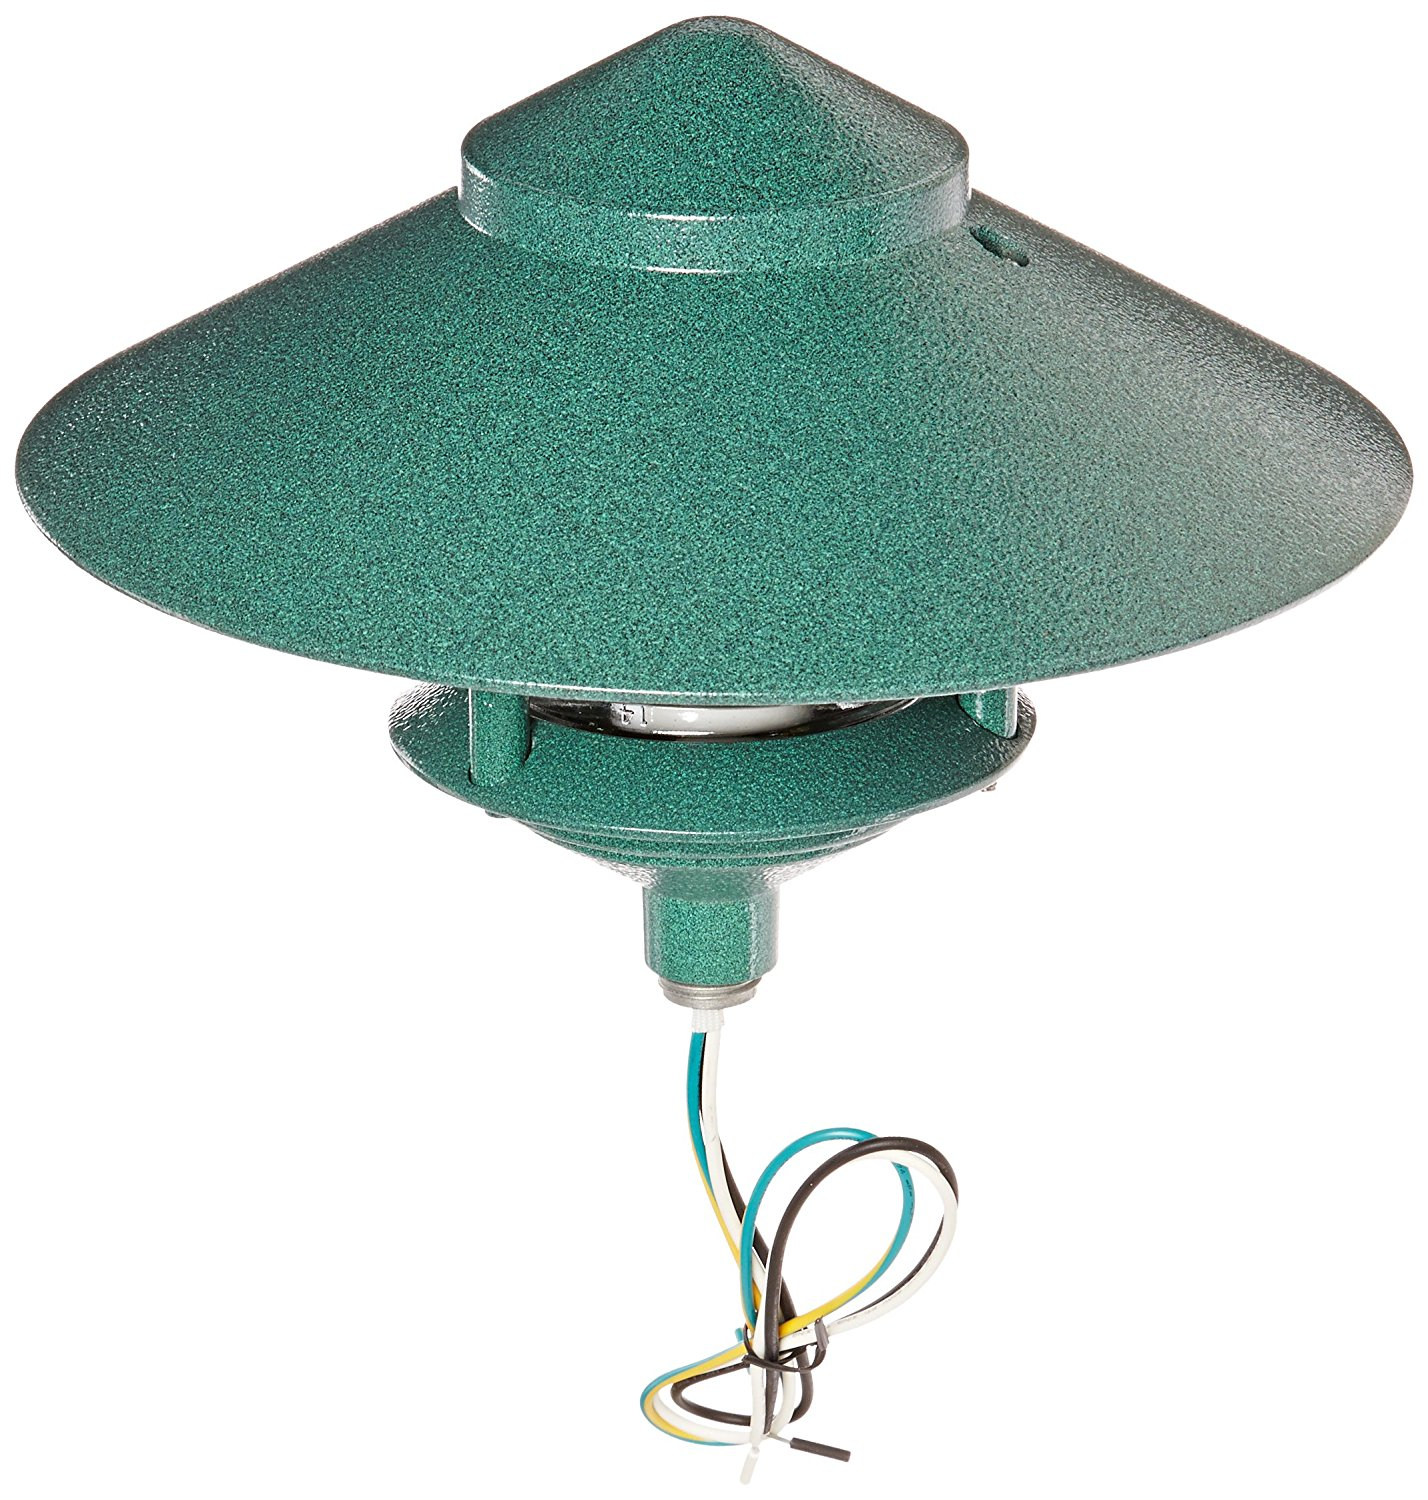 "RAB Lighting LL323VG Incandescent 3 Tier Lawn Light with 10"" Top, A-19 Type, 75W Power, 1220 Lumens, 120VAC, Verde Green"